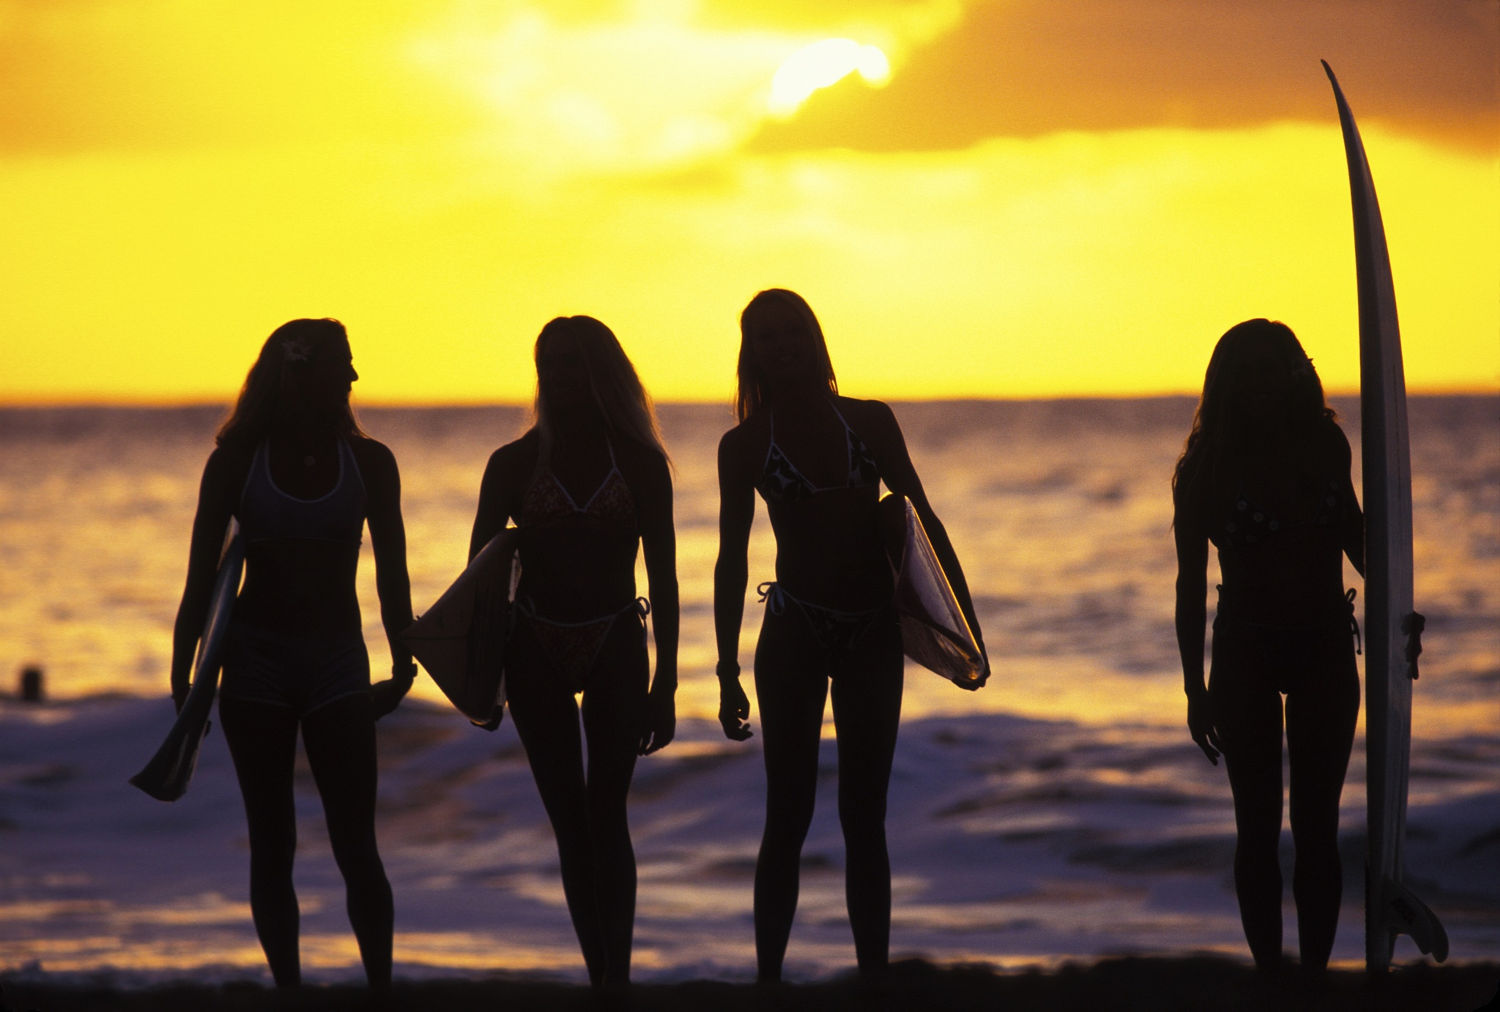 silhouetted surfer girls, Waimea Bay, north shore, 1996